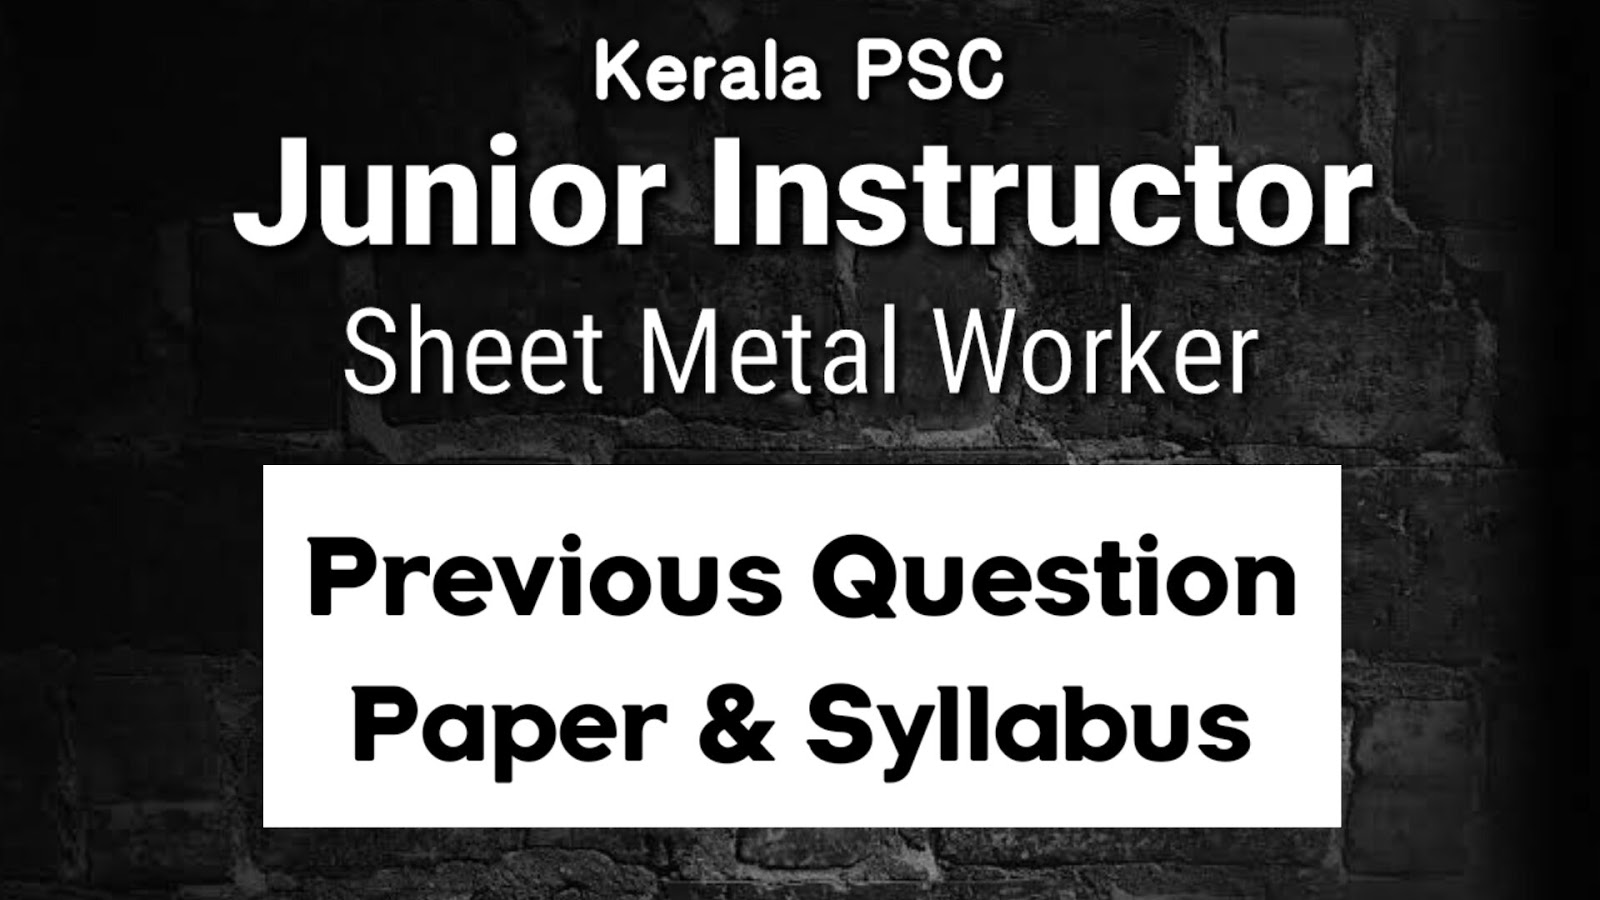 Kerala Psc Junior Instructor Sheet Metal Worker Previous Question Paper Psc Library